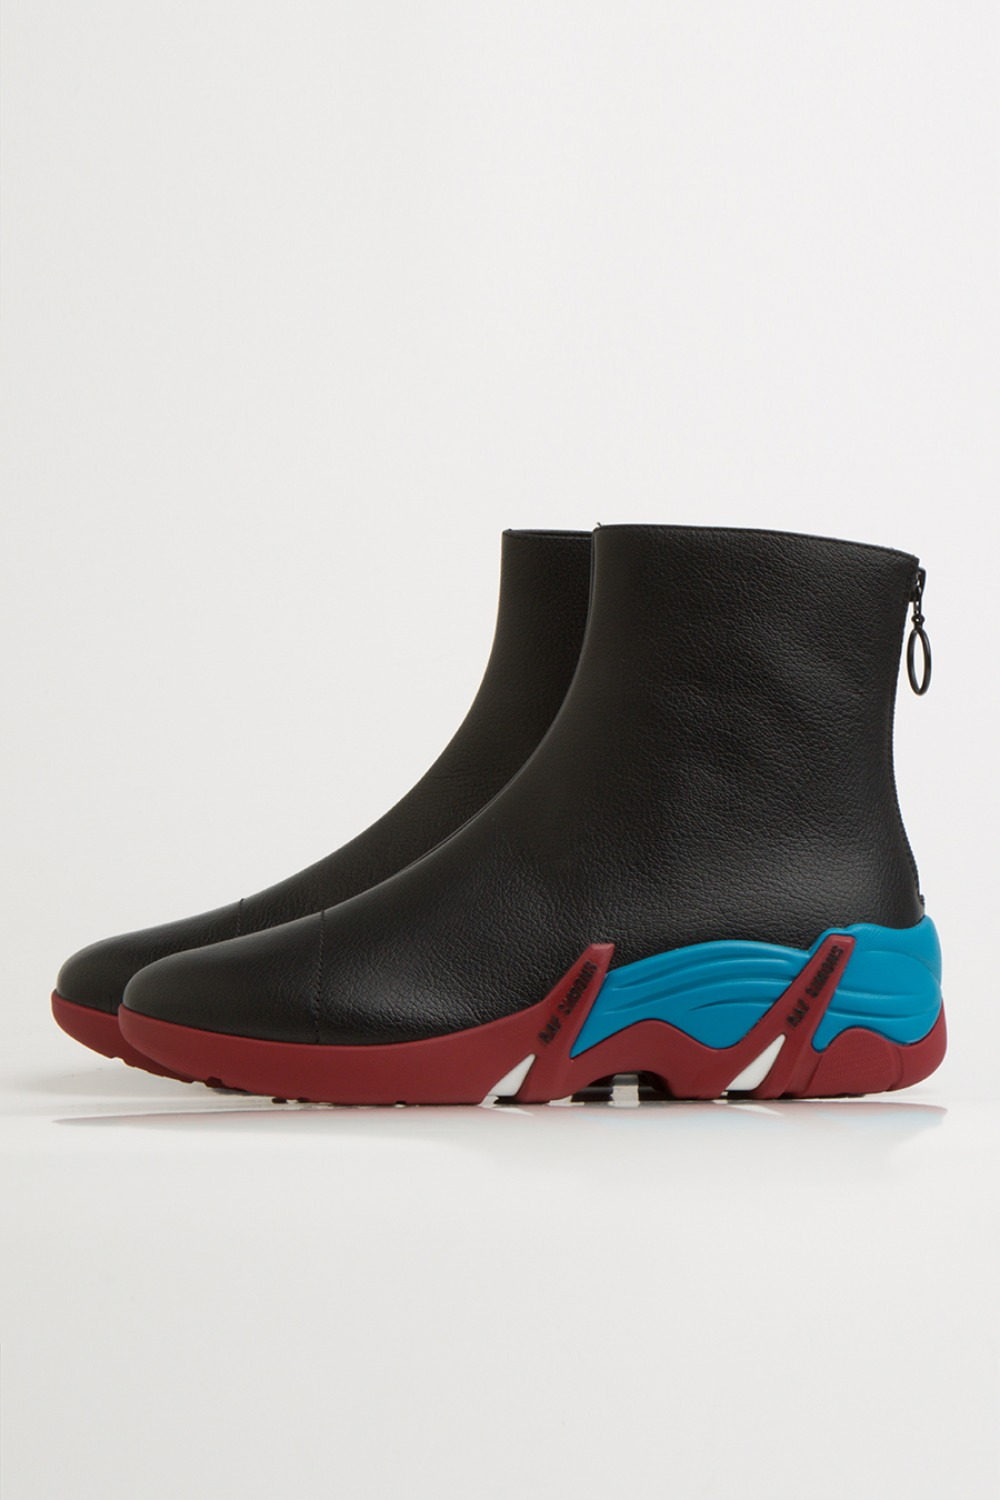 CYLON 202-986 LEATHER BLACK/BLUE/RED